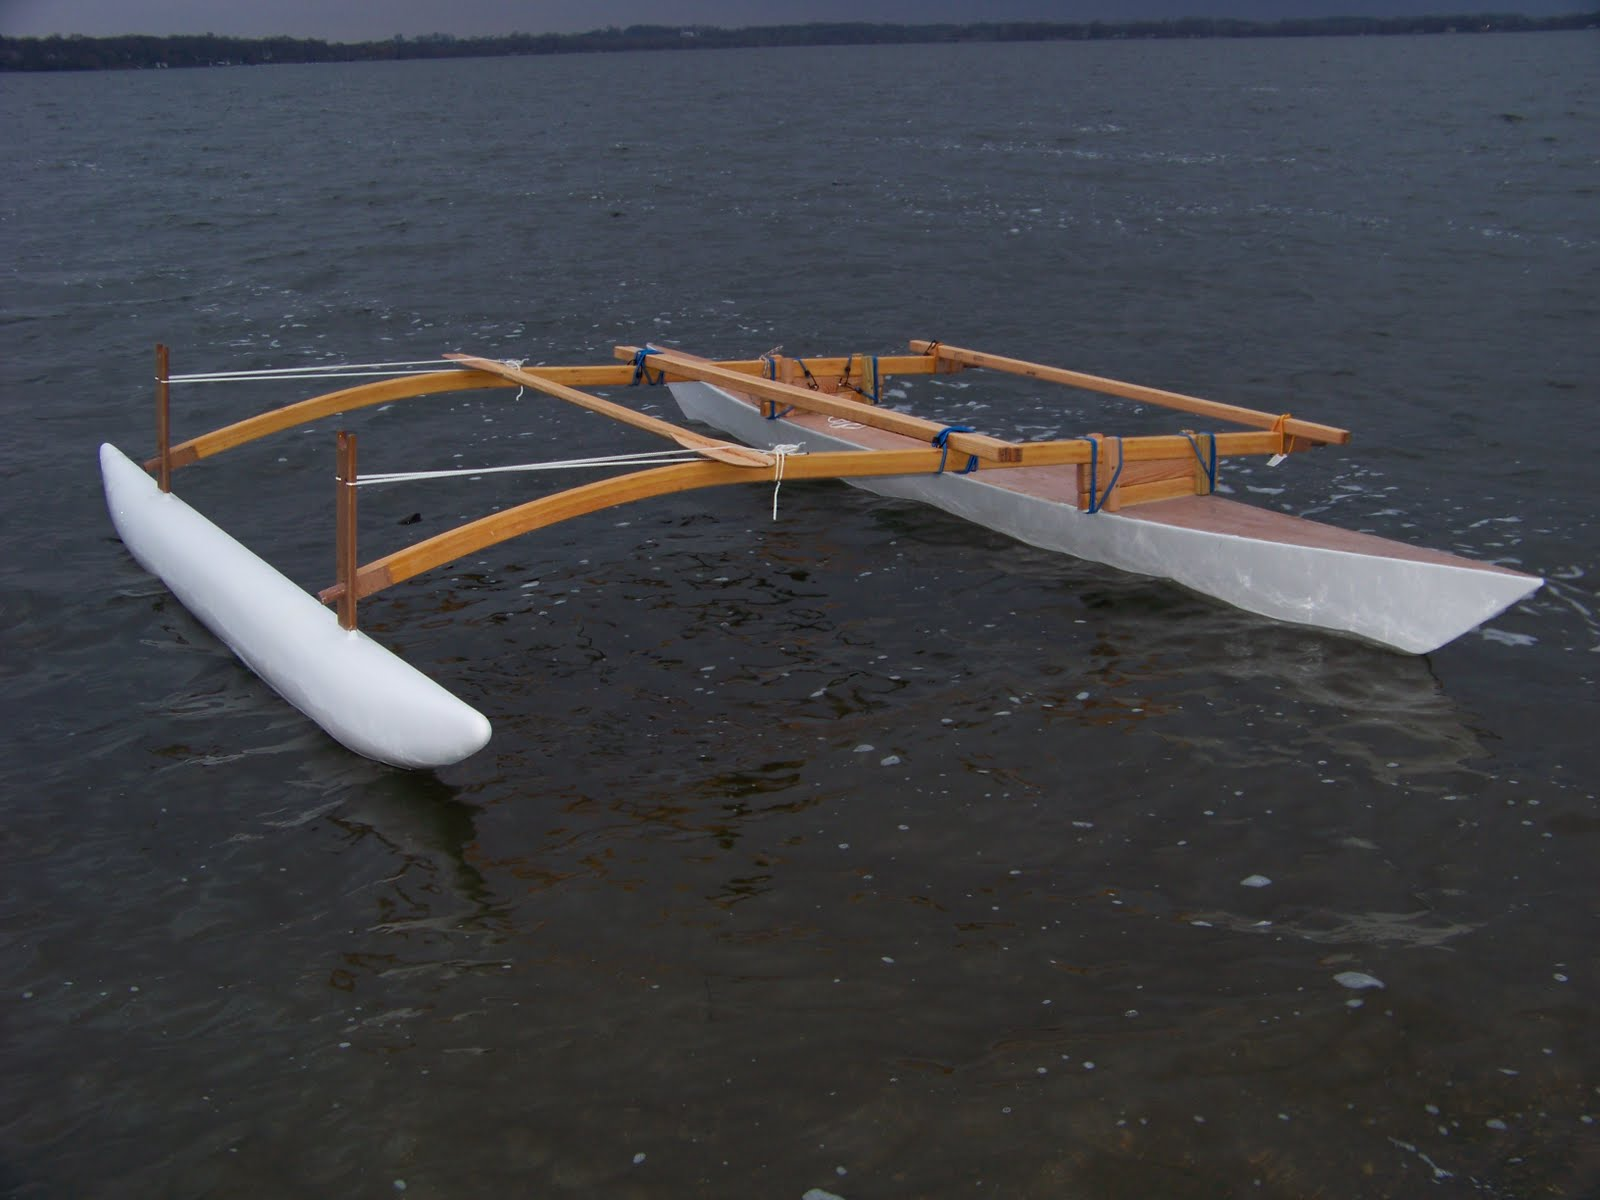 Doug Weir S Proa Project For Paddling Sailing And Marine